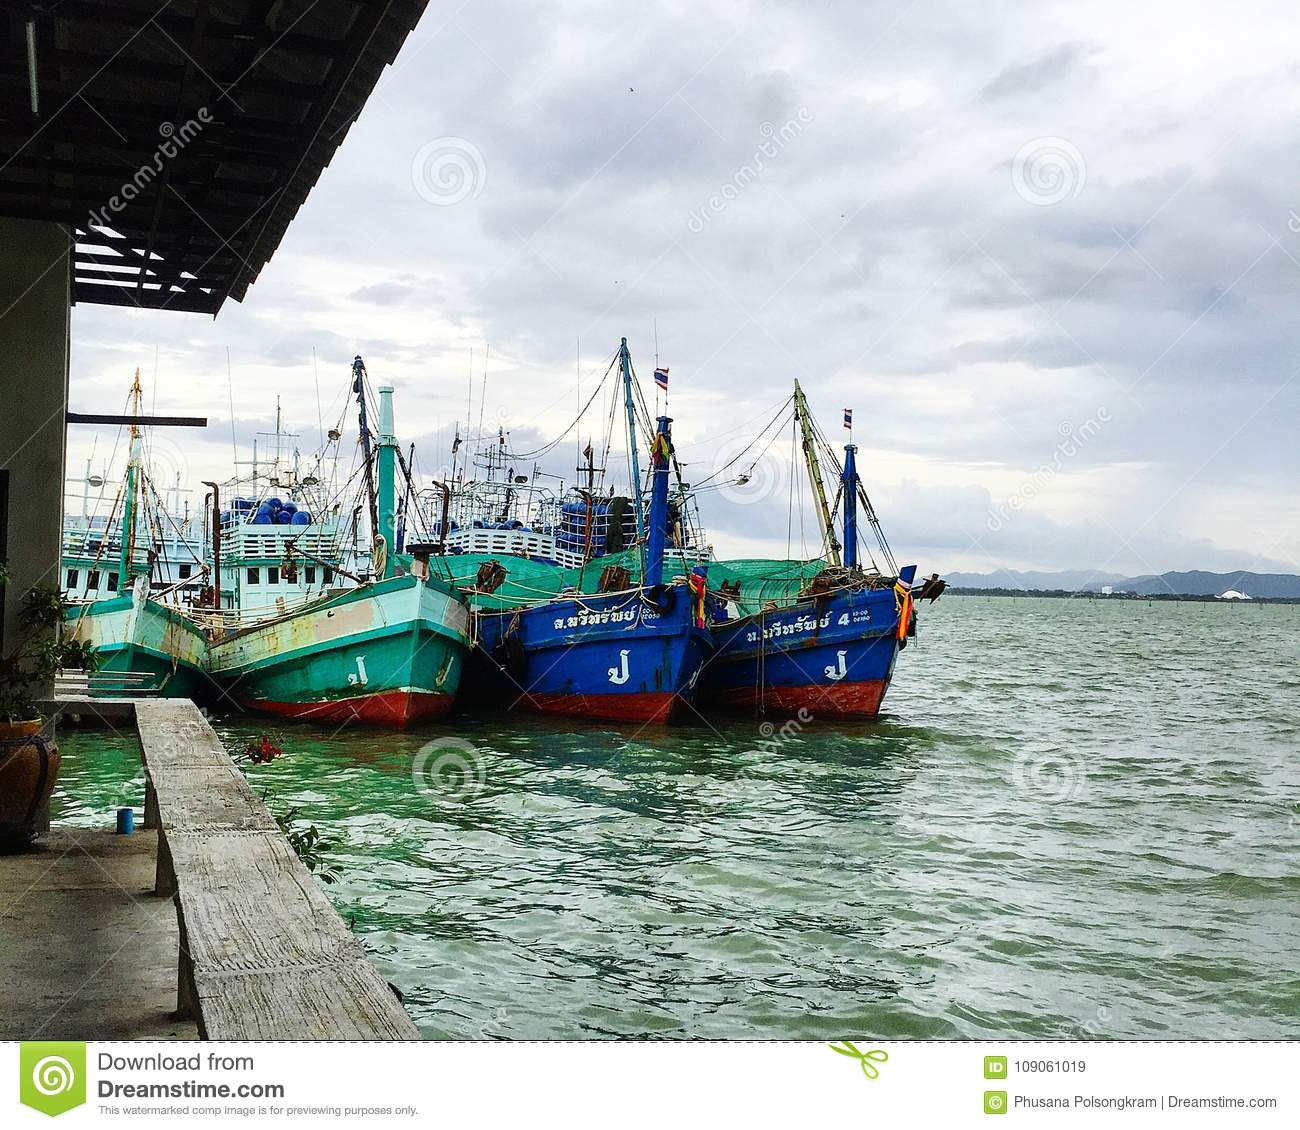 Boats At Harbor In Thailand Editorial Stock Image - Image of